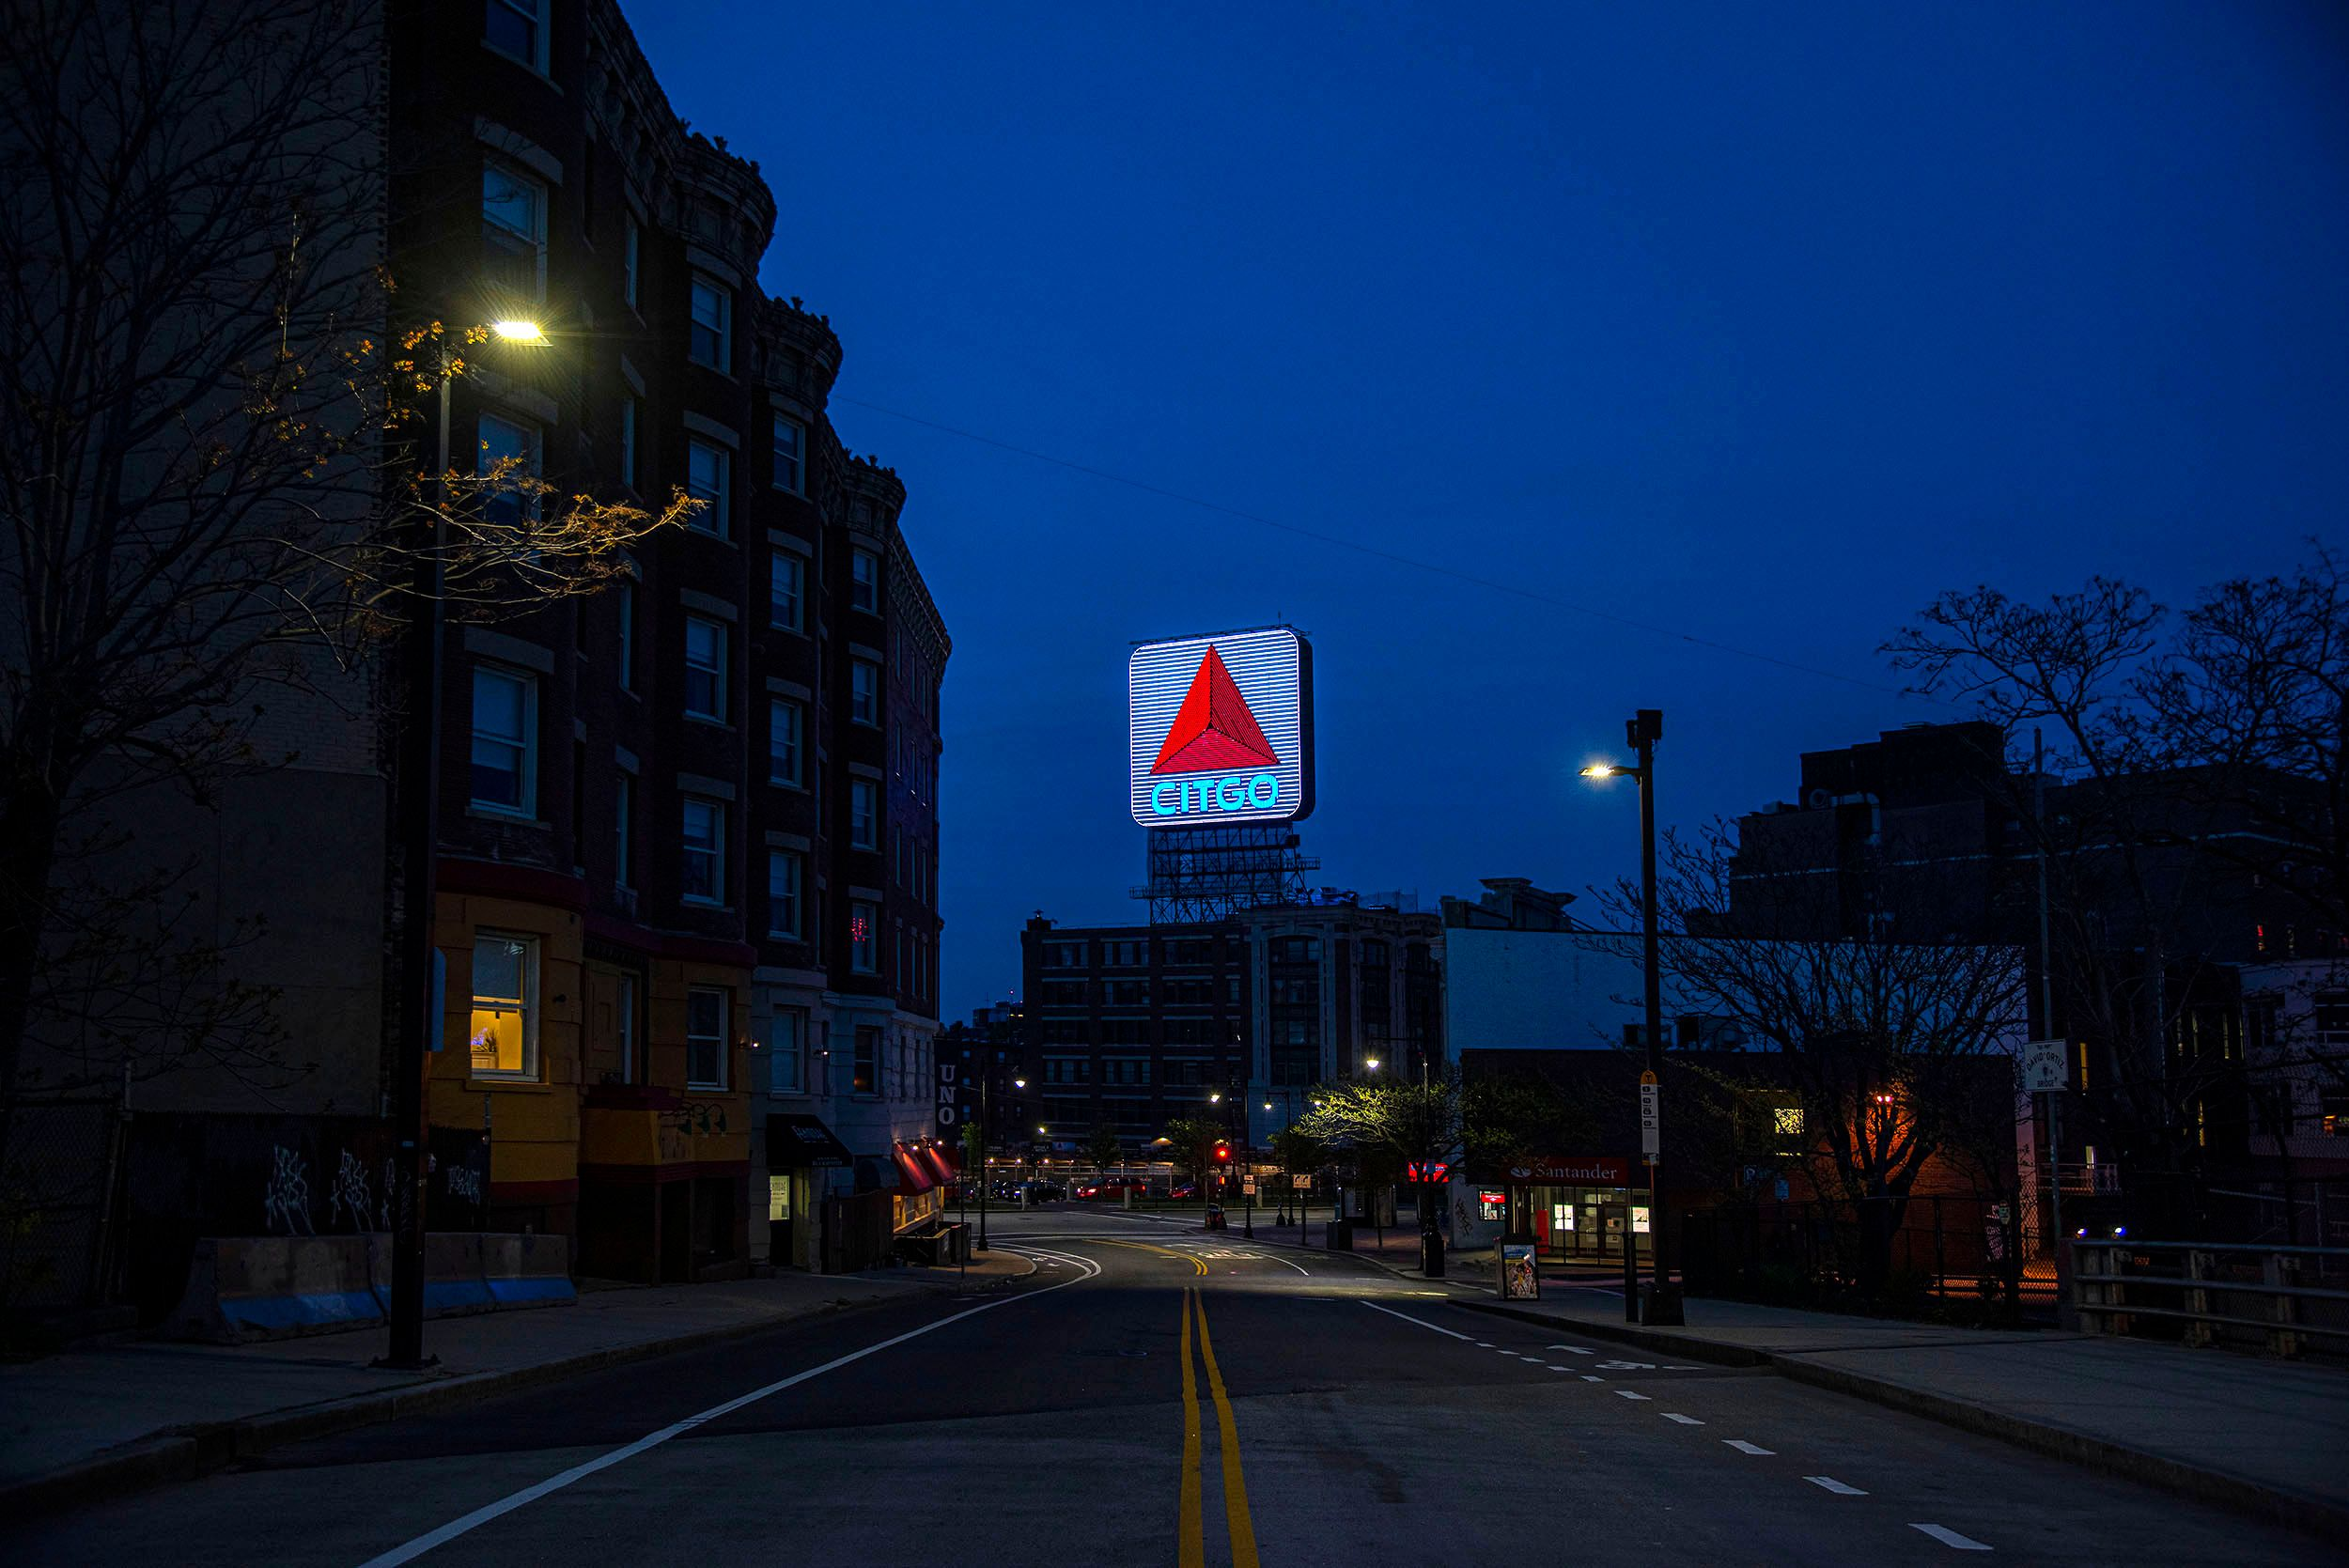 Neon Citgo Sign